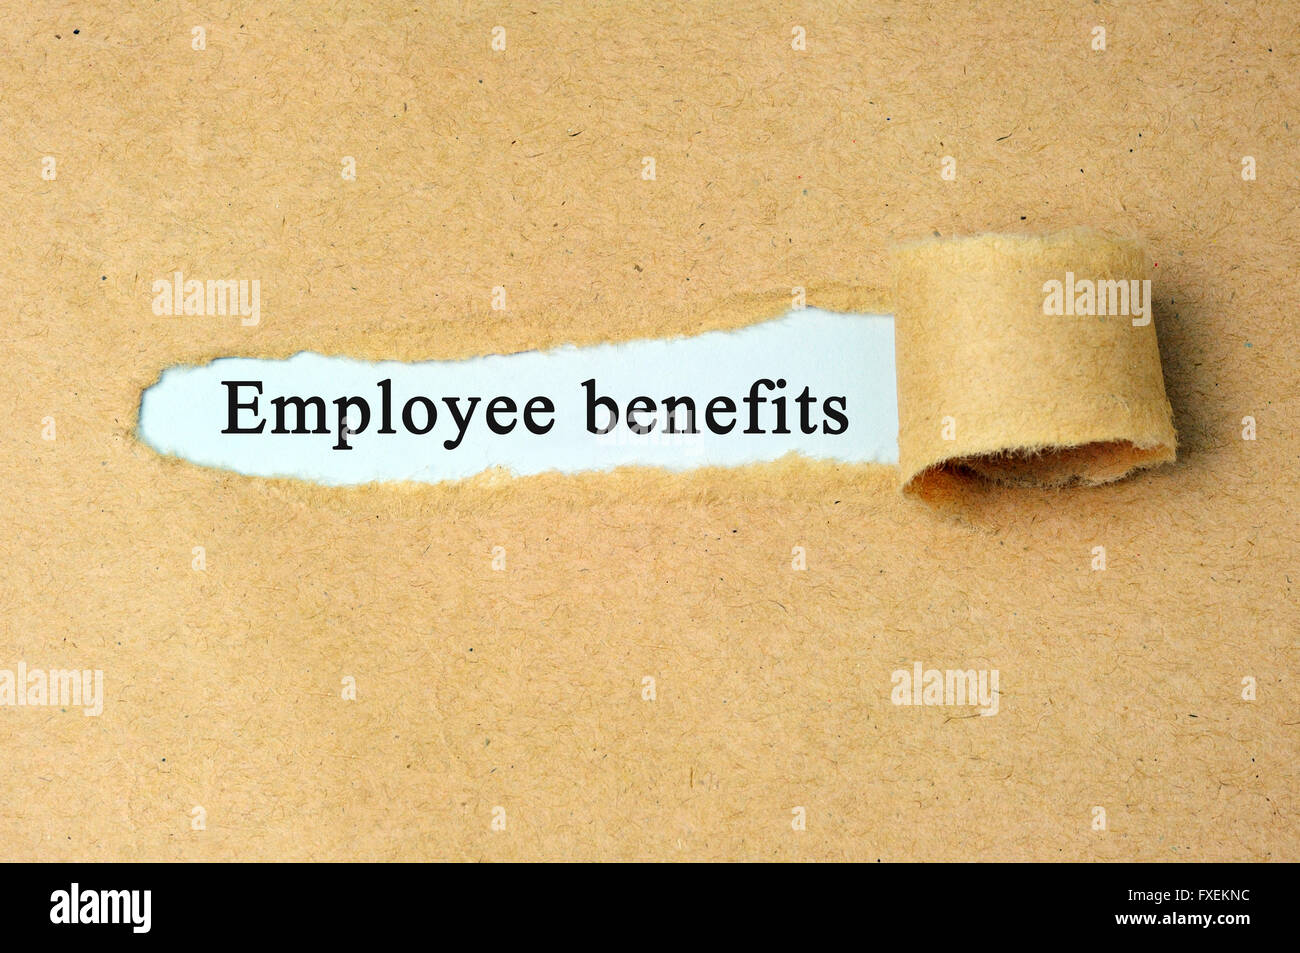 Ripped paper with  'Employee benefits' text. - Stock Image